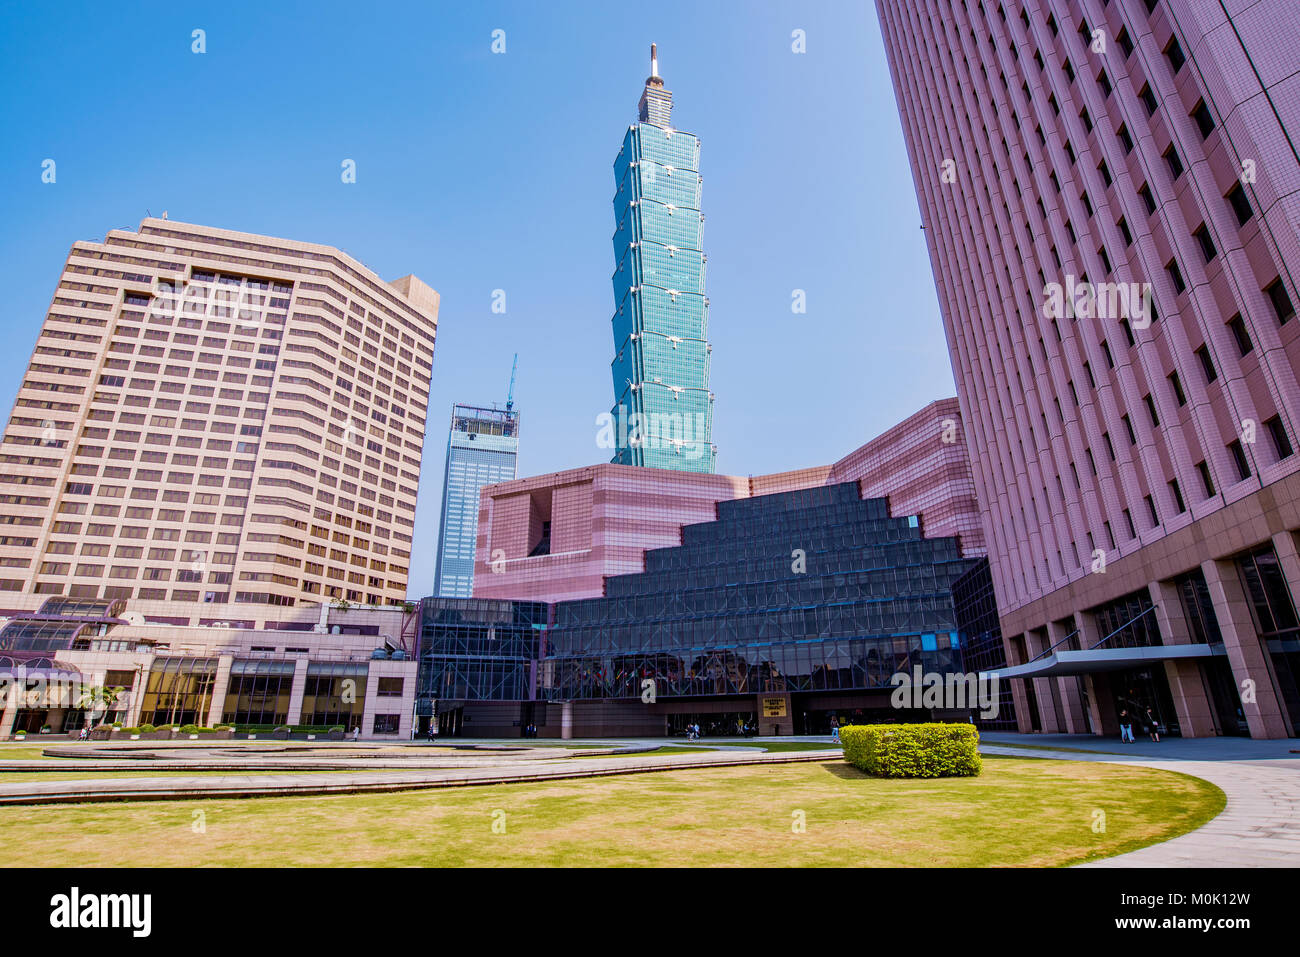 TAIPEI, TAIWAN - MARCH 28: This is a view of the World Trade Center building and Taipei 101 in the Xinyi financial - Stock Image